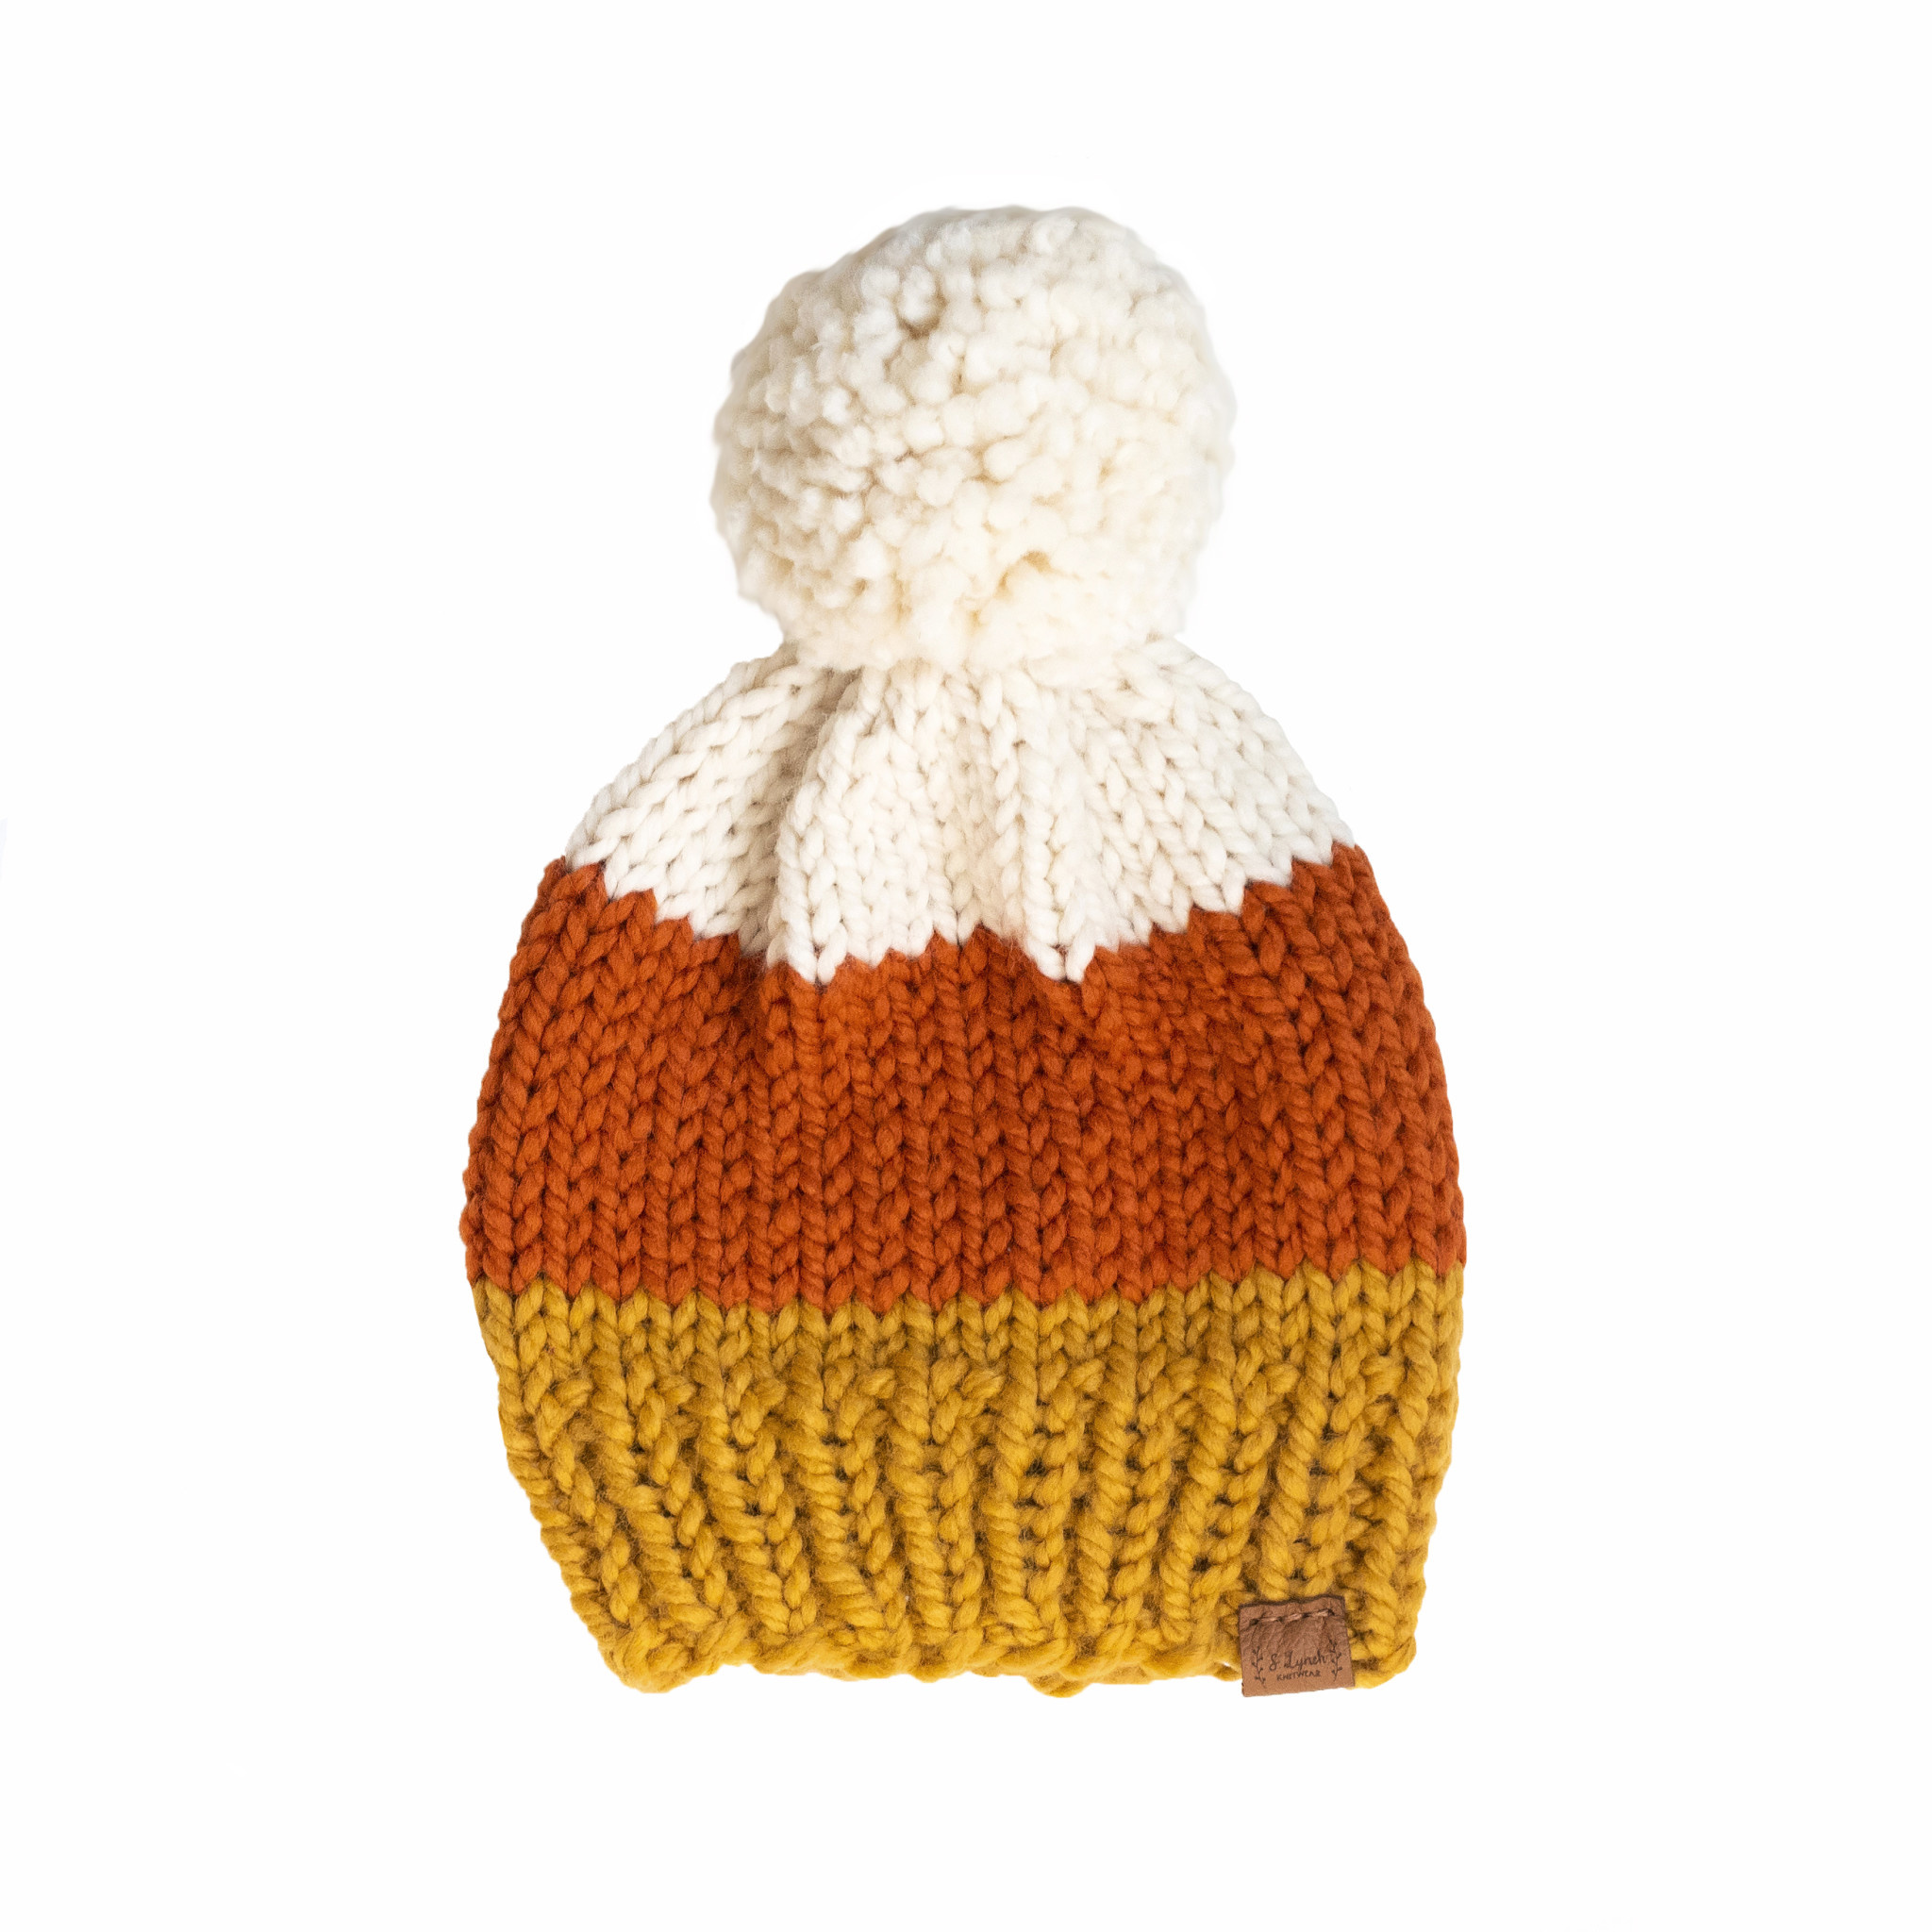 S. Lynch Knitwear S. Lynch Knitwear Baby Hat - Candy Corn - 3-6M